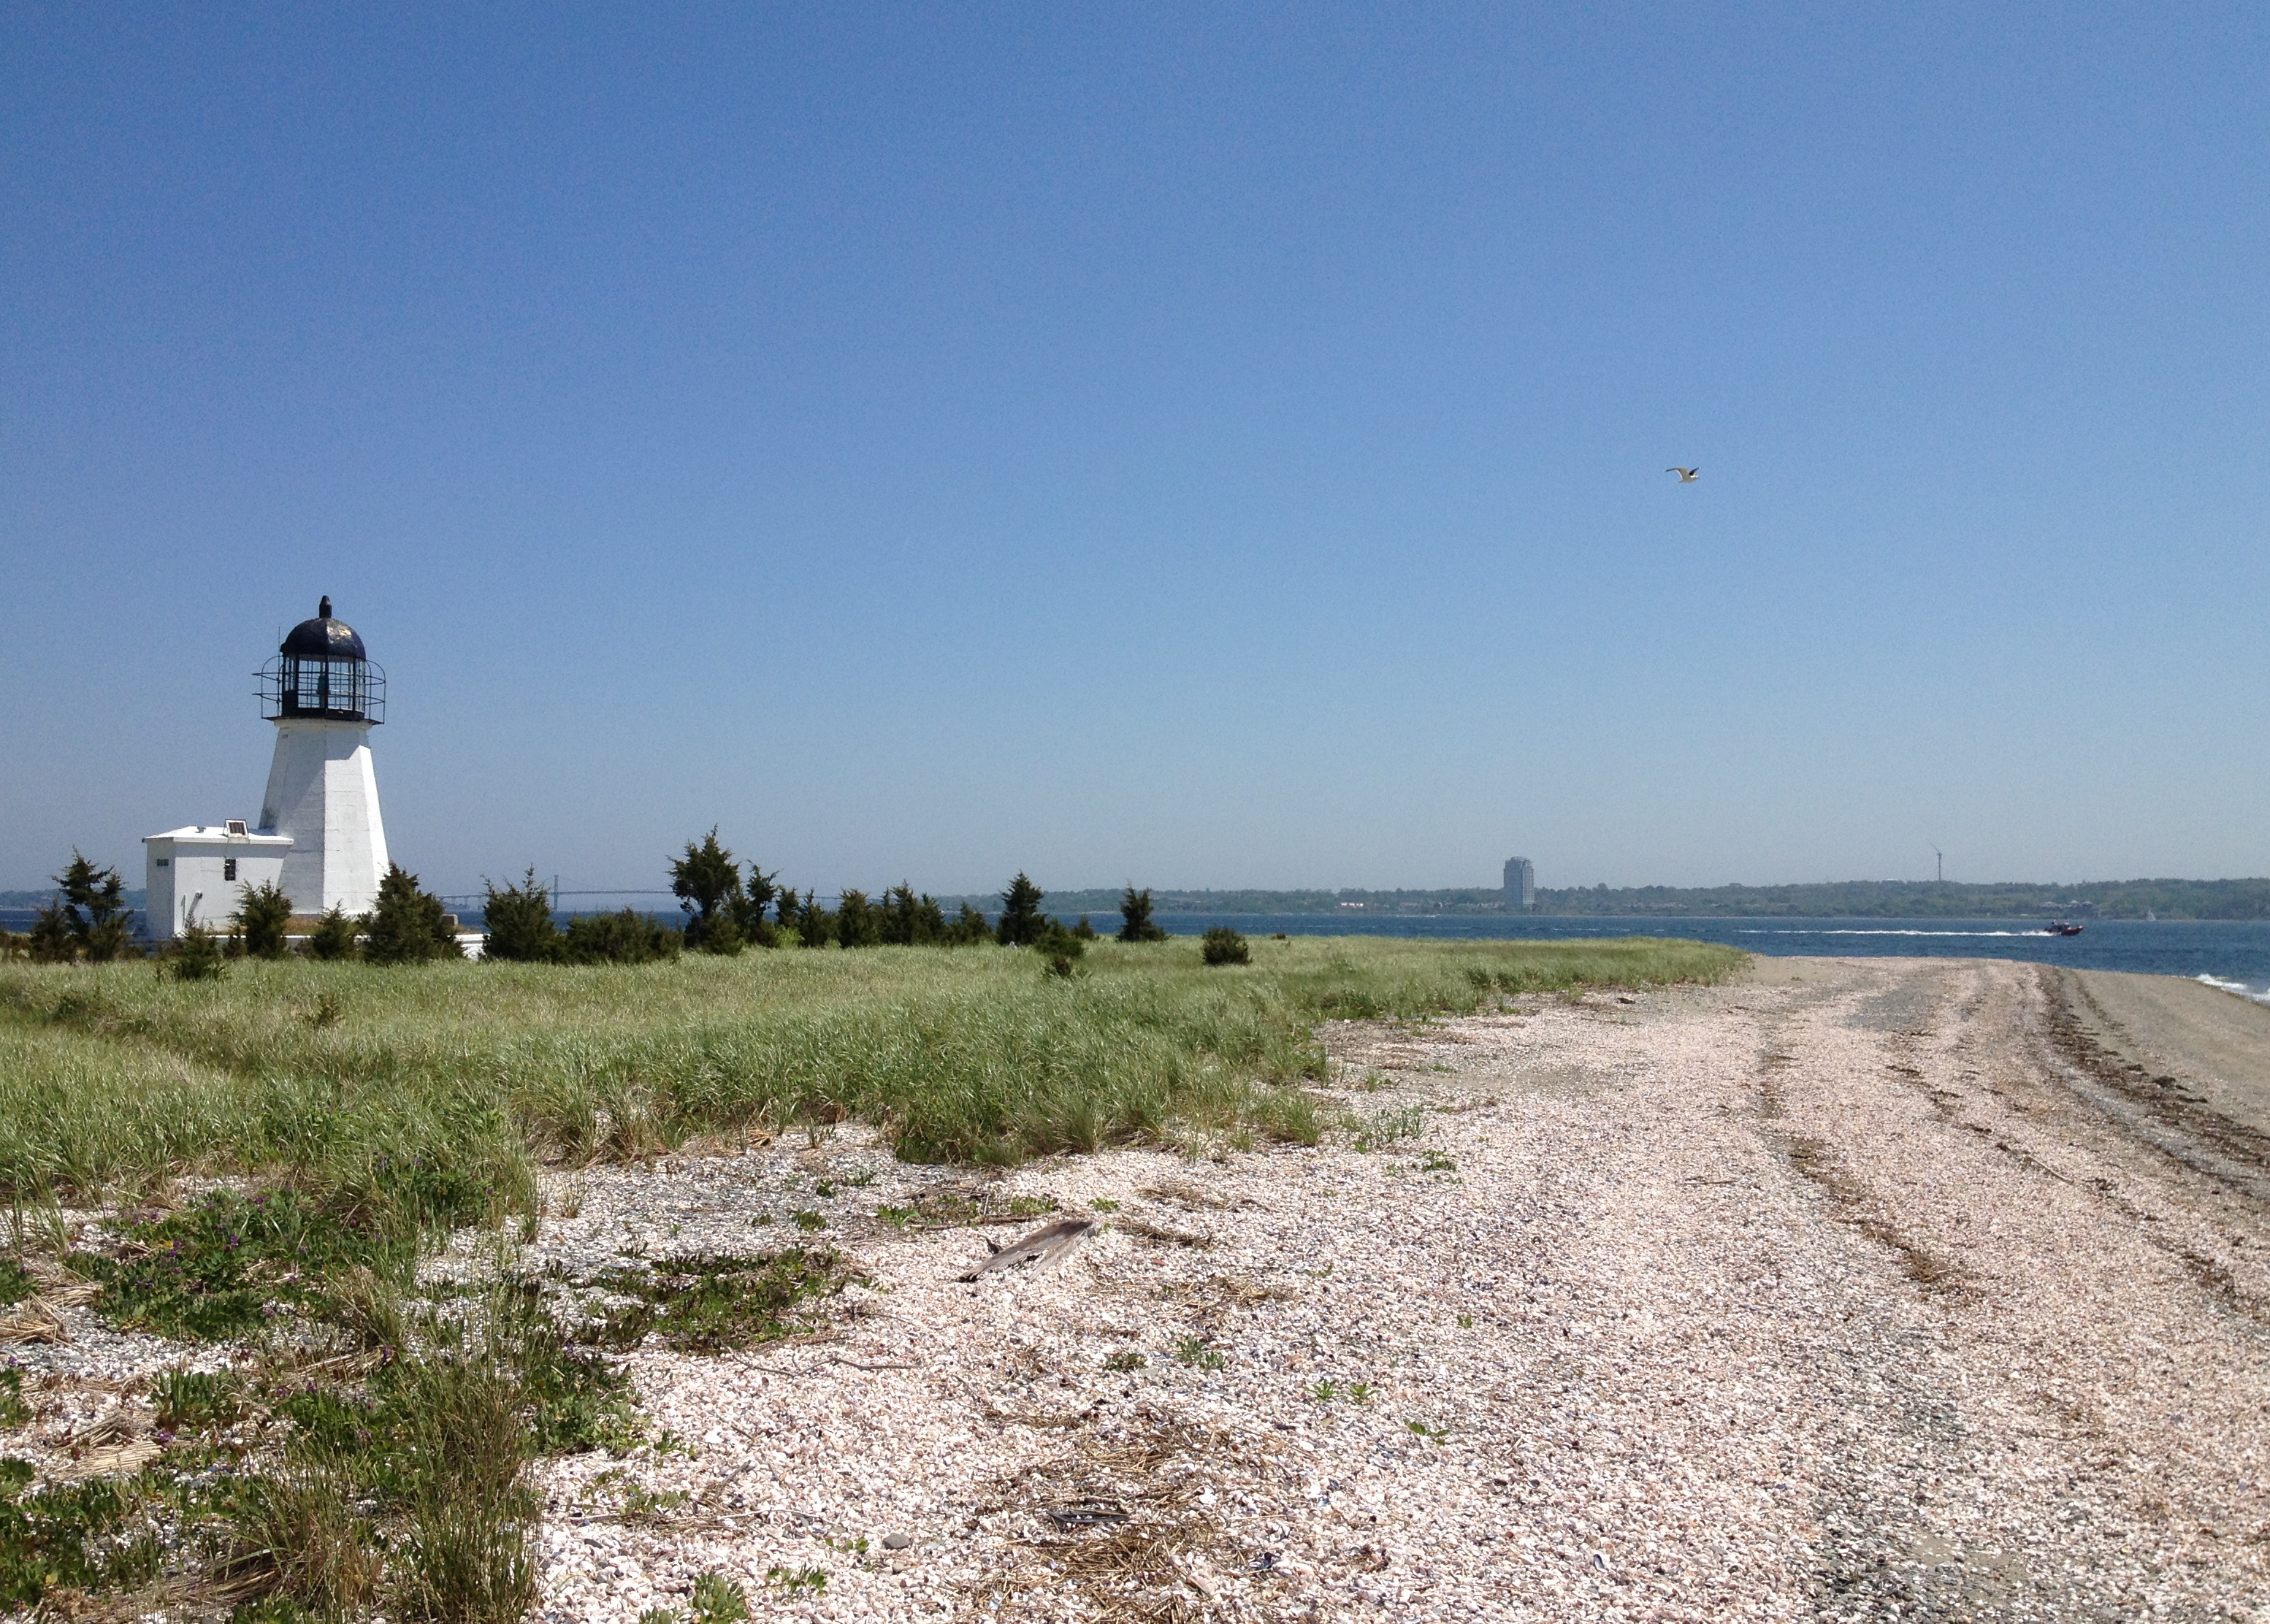 prudence island Find homes for sale and real estate in prudence island, ri at realtorcom® search and filter prudence island homes by price, beds, baths and property type.